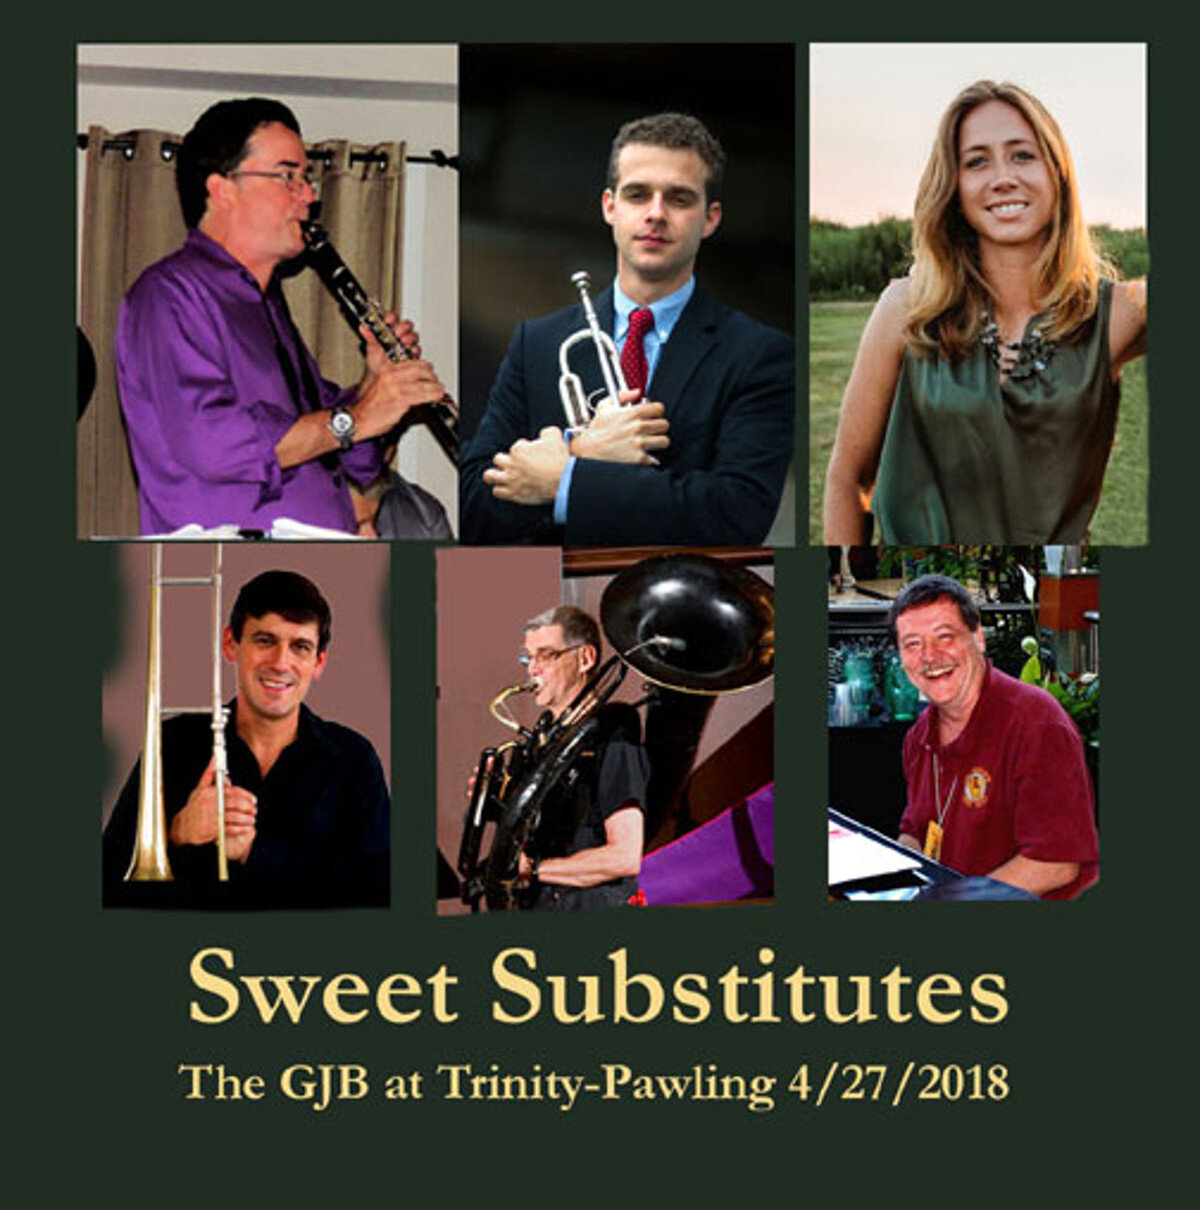 Galvanized Jazz Band Sweet Substitutes